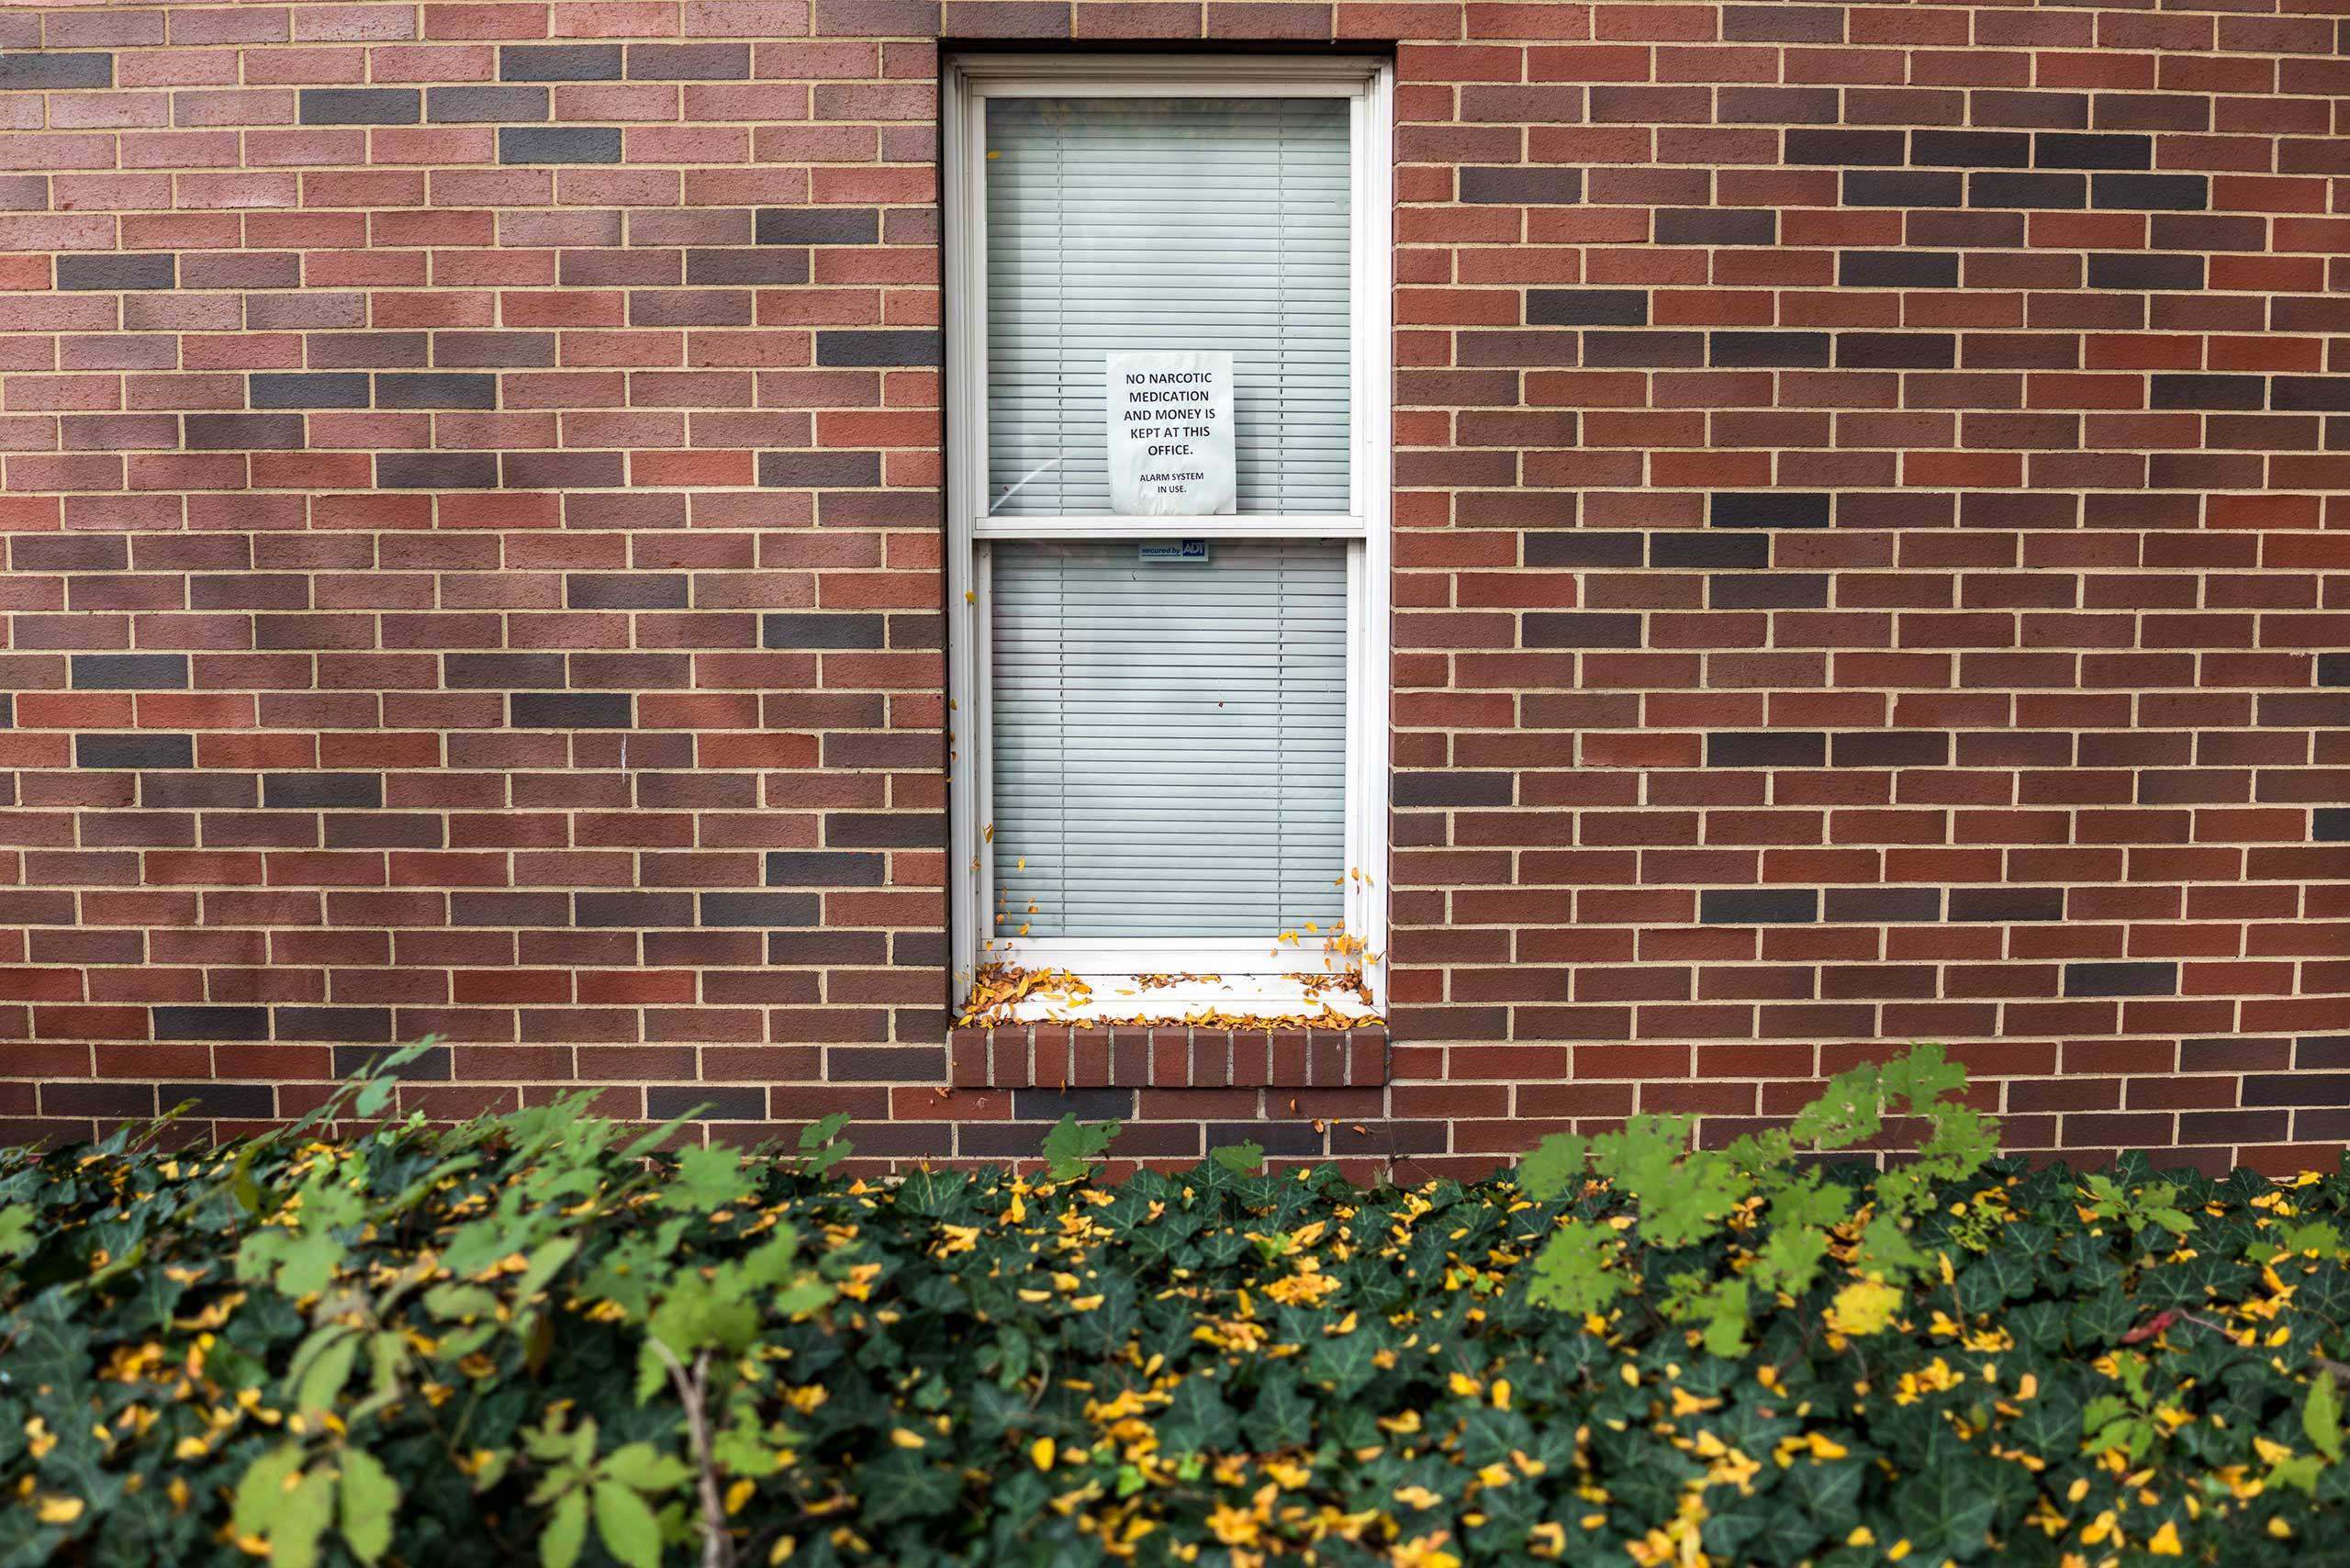 """A sign hangs in the window of a small medical clinic in downtown East Liverpool, Ohio, on Oct. 8, 2016. """"No Narcotic medication and money is kept at this office,"""" it reads. Stores and shops are frequently burglarized by addicts, according to police."""